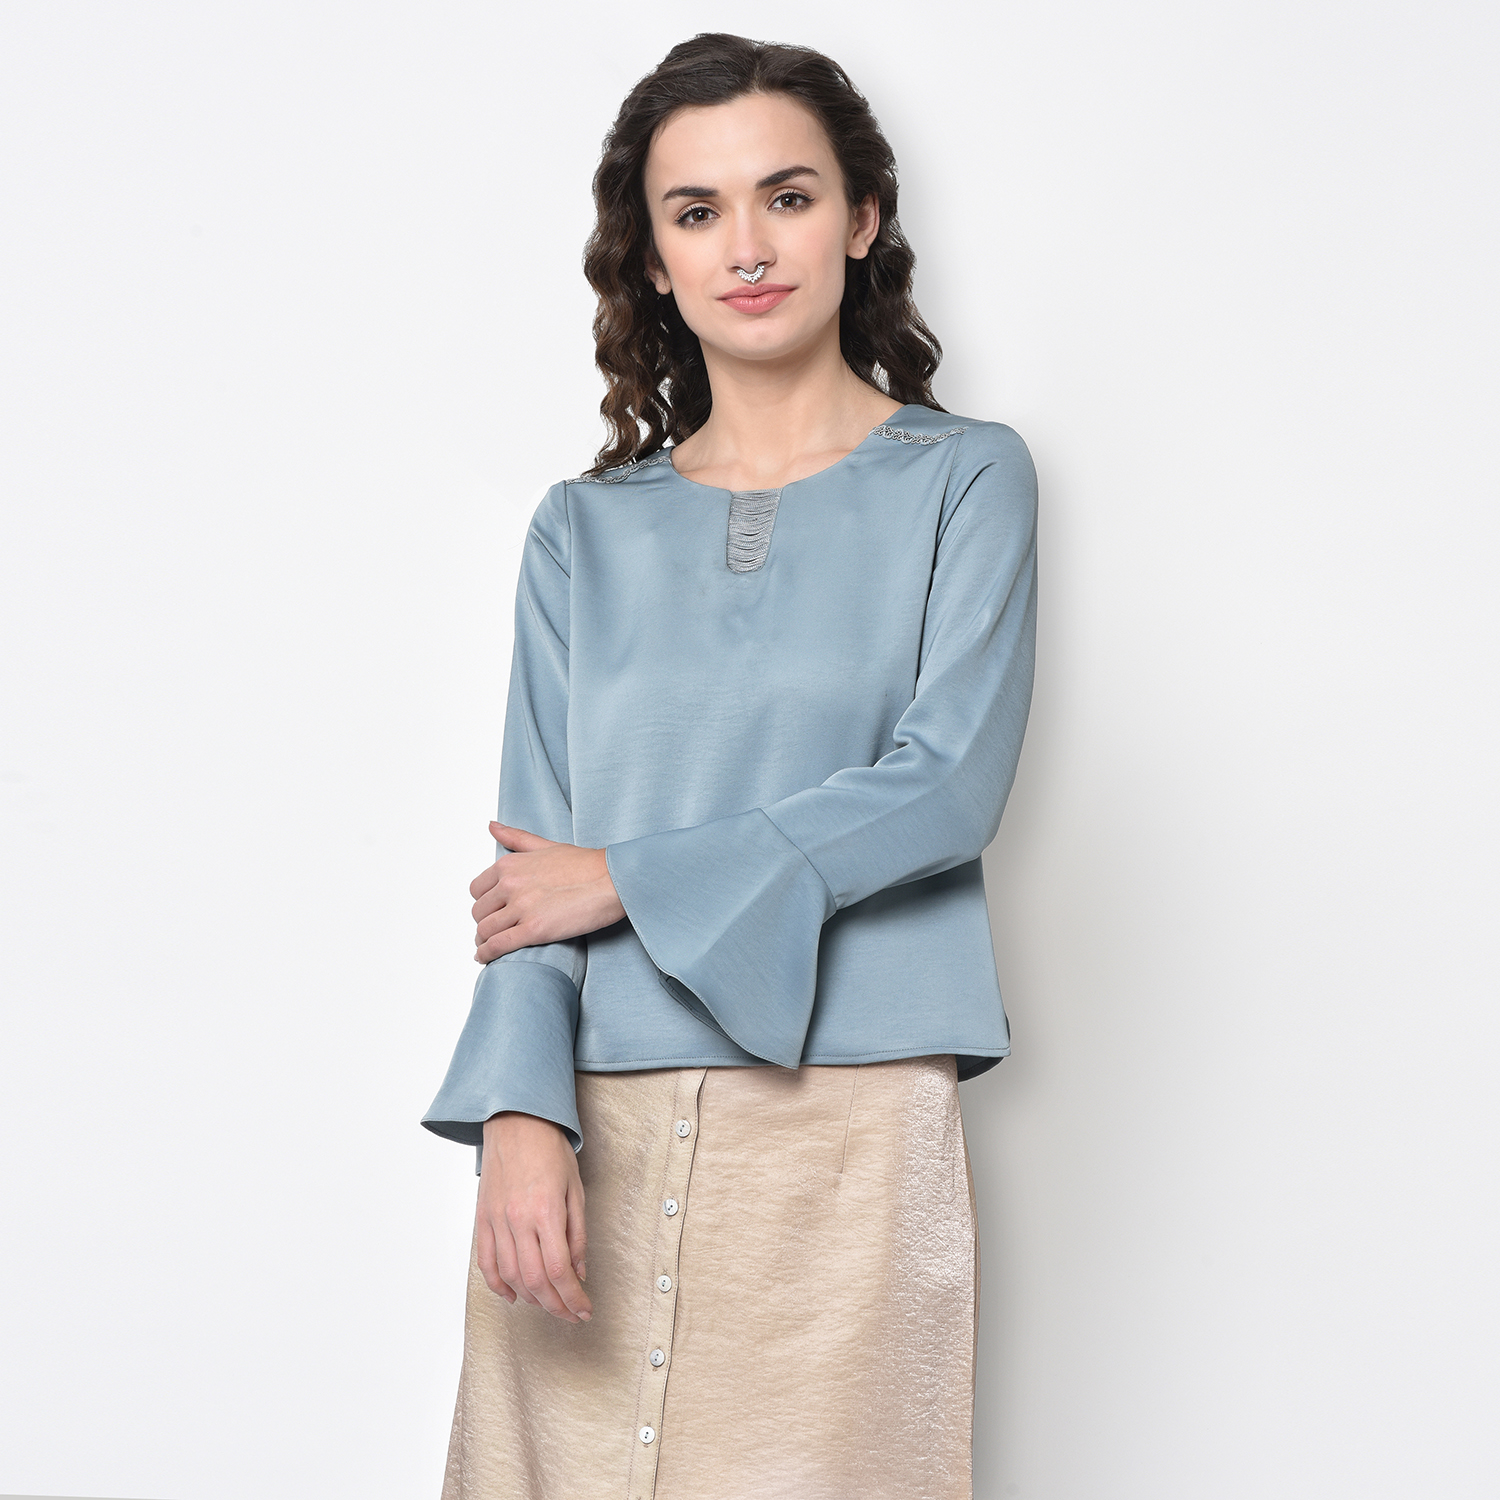 Buy Blue Top With Strings At Neck For Women